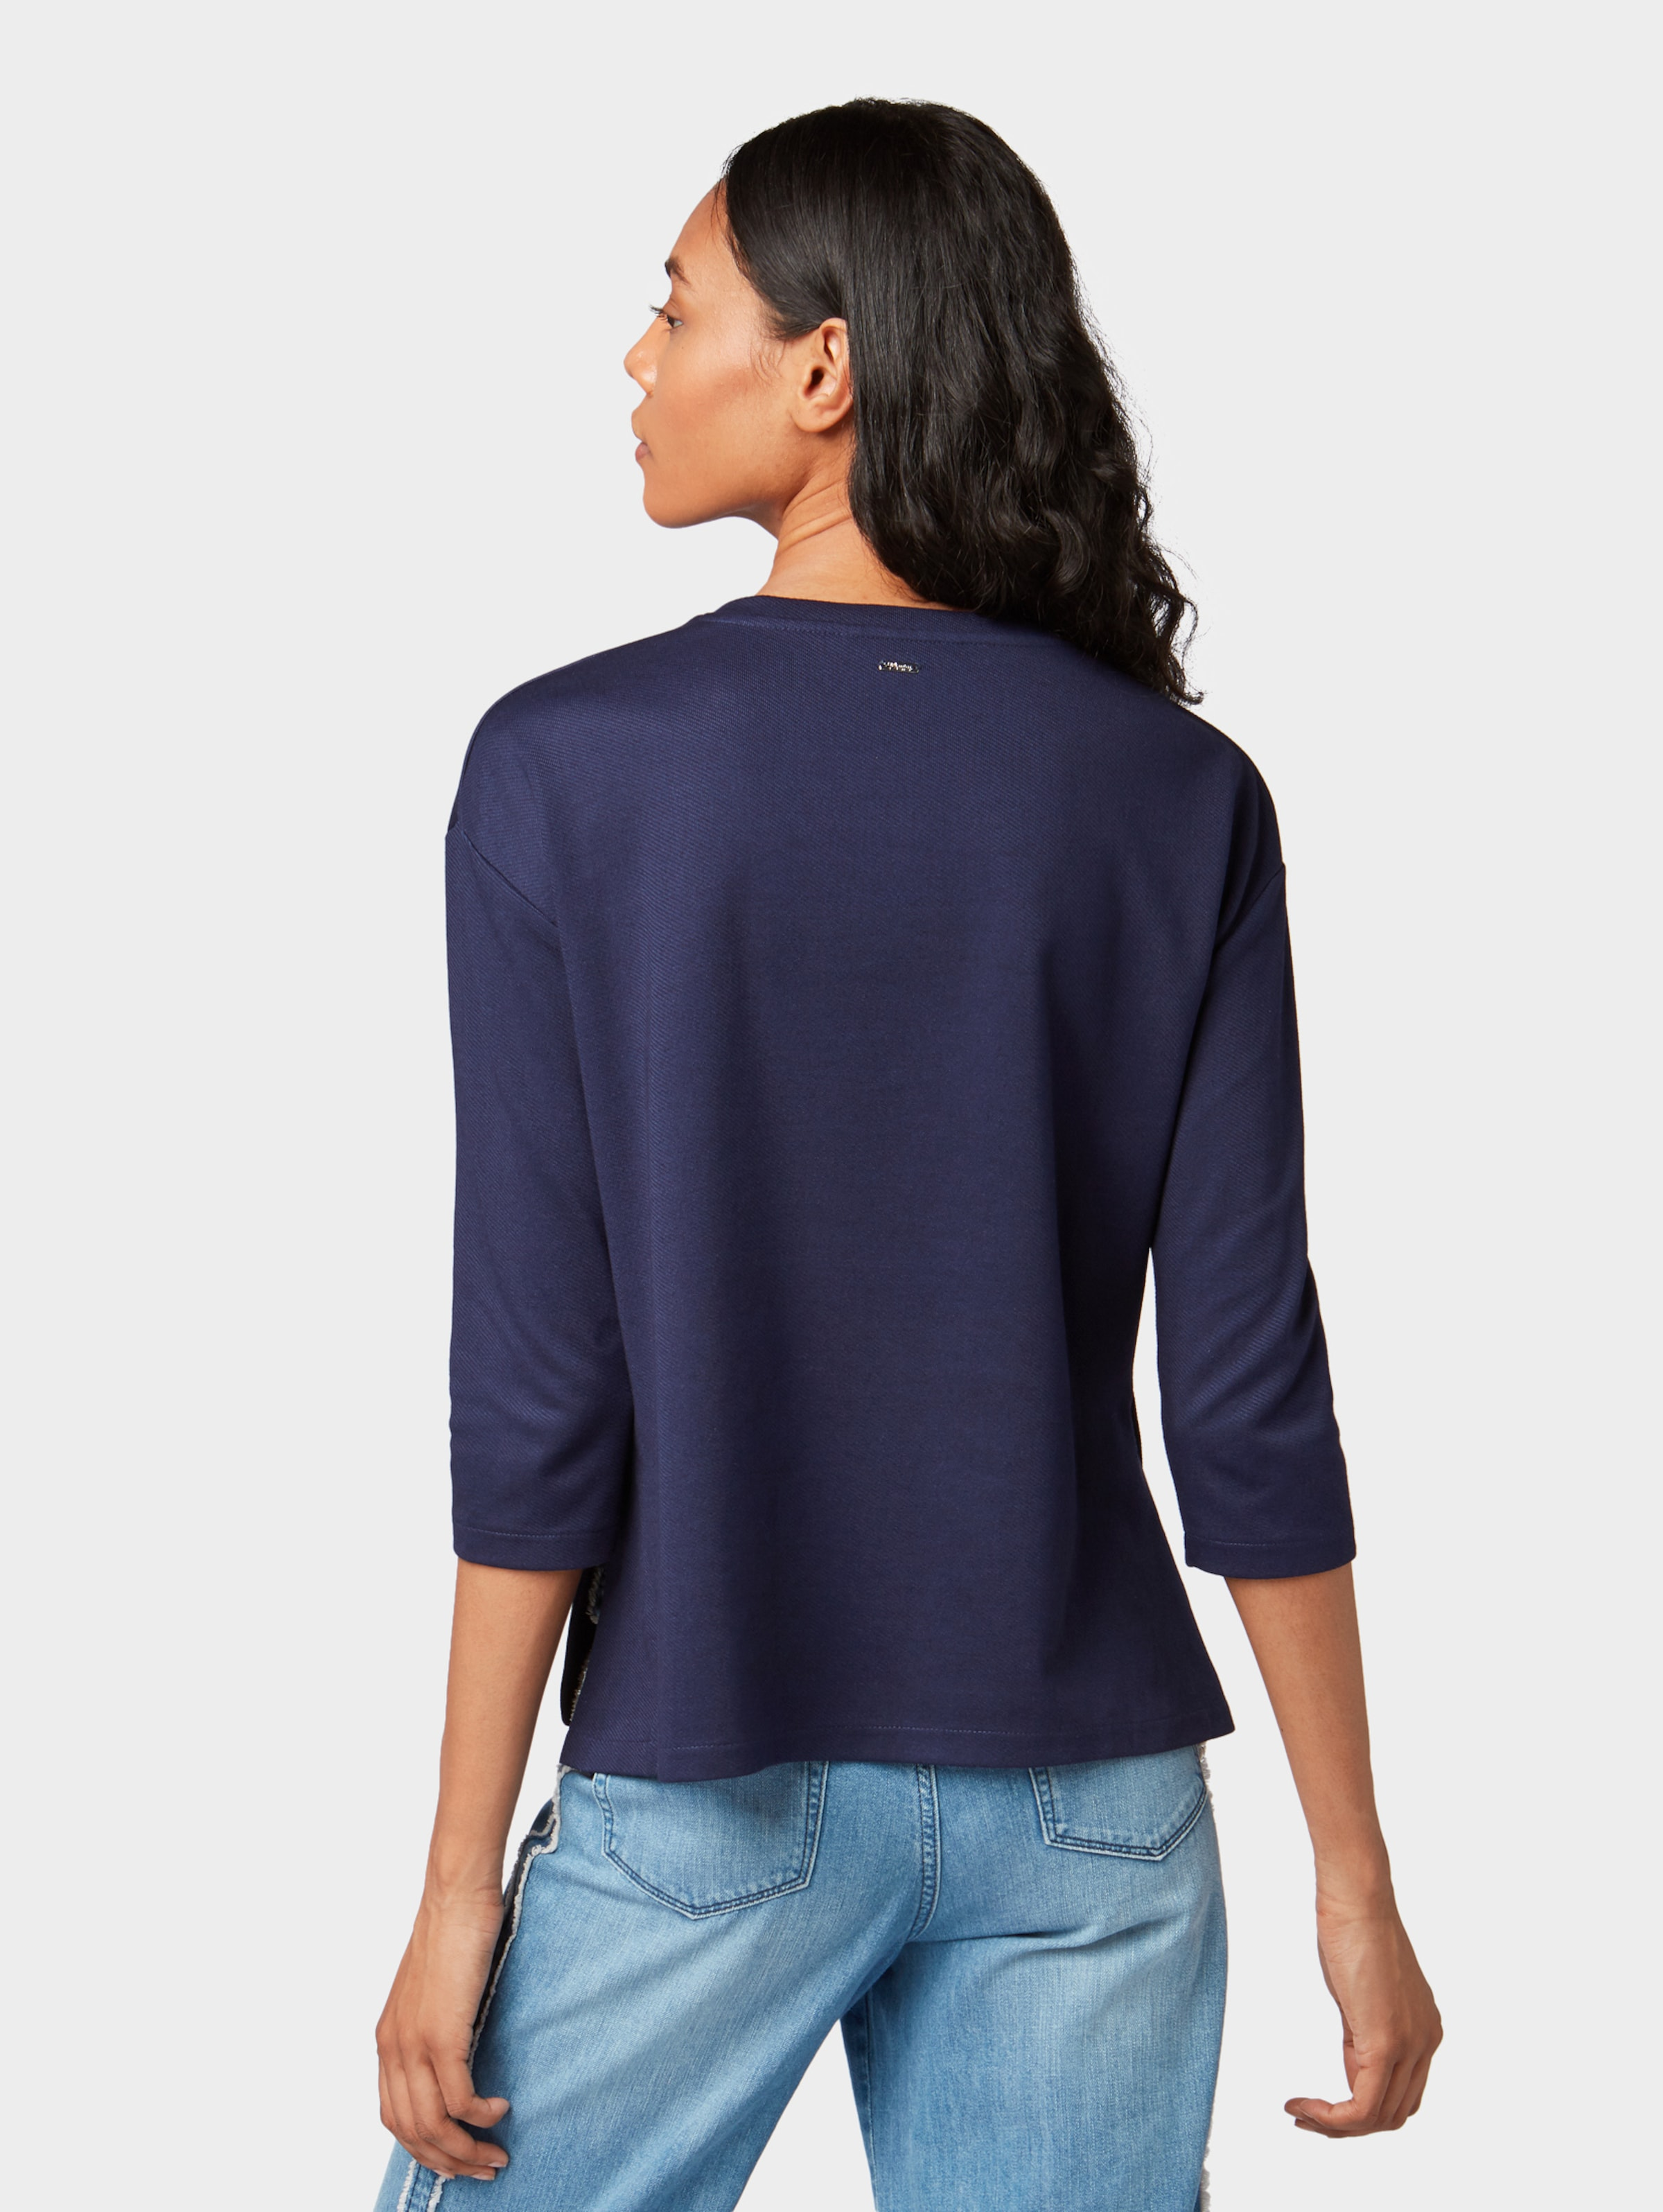 Tailor Sweatshirt In Denim NachtblauPink Tom f7mbvIYgy6